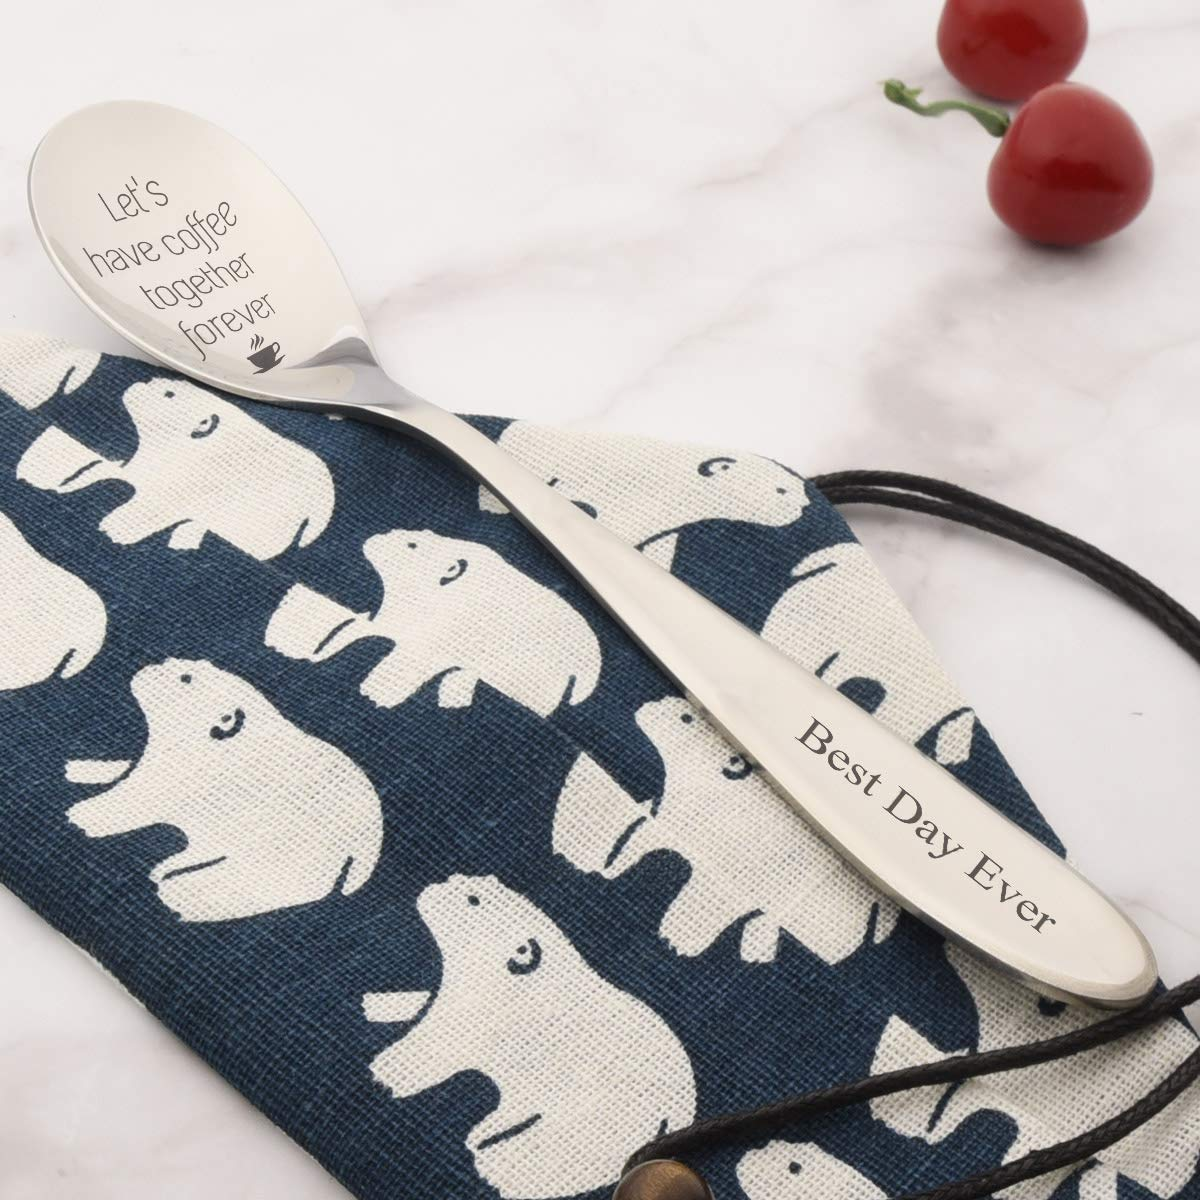 Unique Wedding Gift For Bride and Groom,Valentines Day,Anniversary Gifts Valentine/'s Day I Like Her Butt Couples Funny Spoon Set I Like His Beard